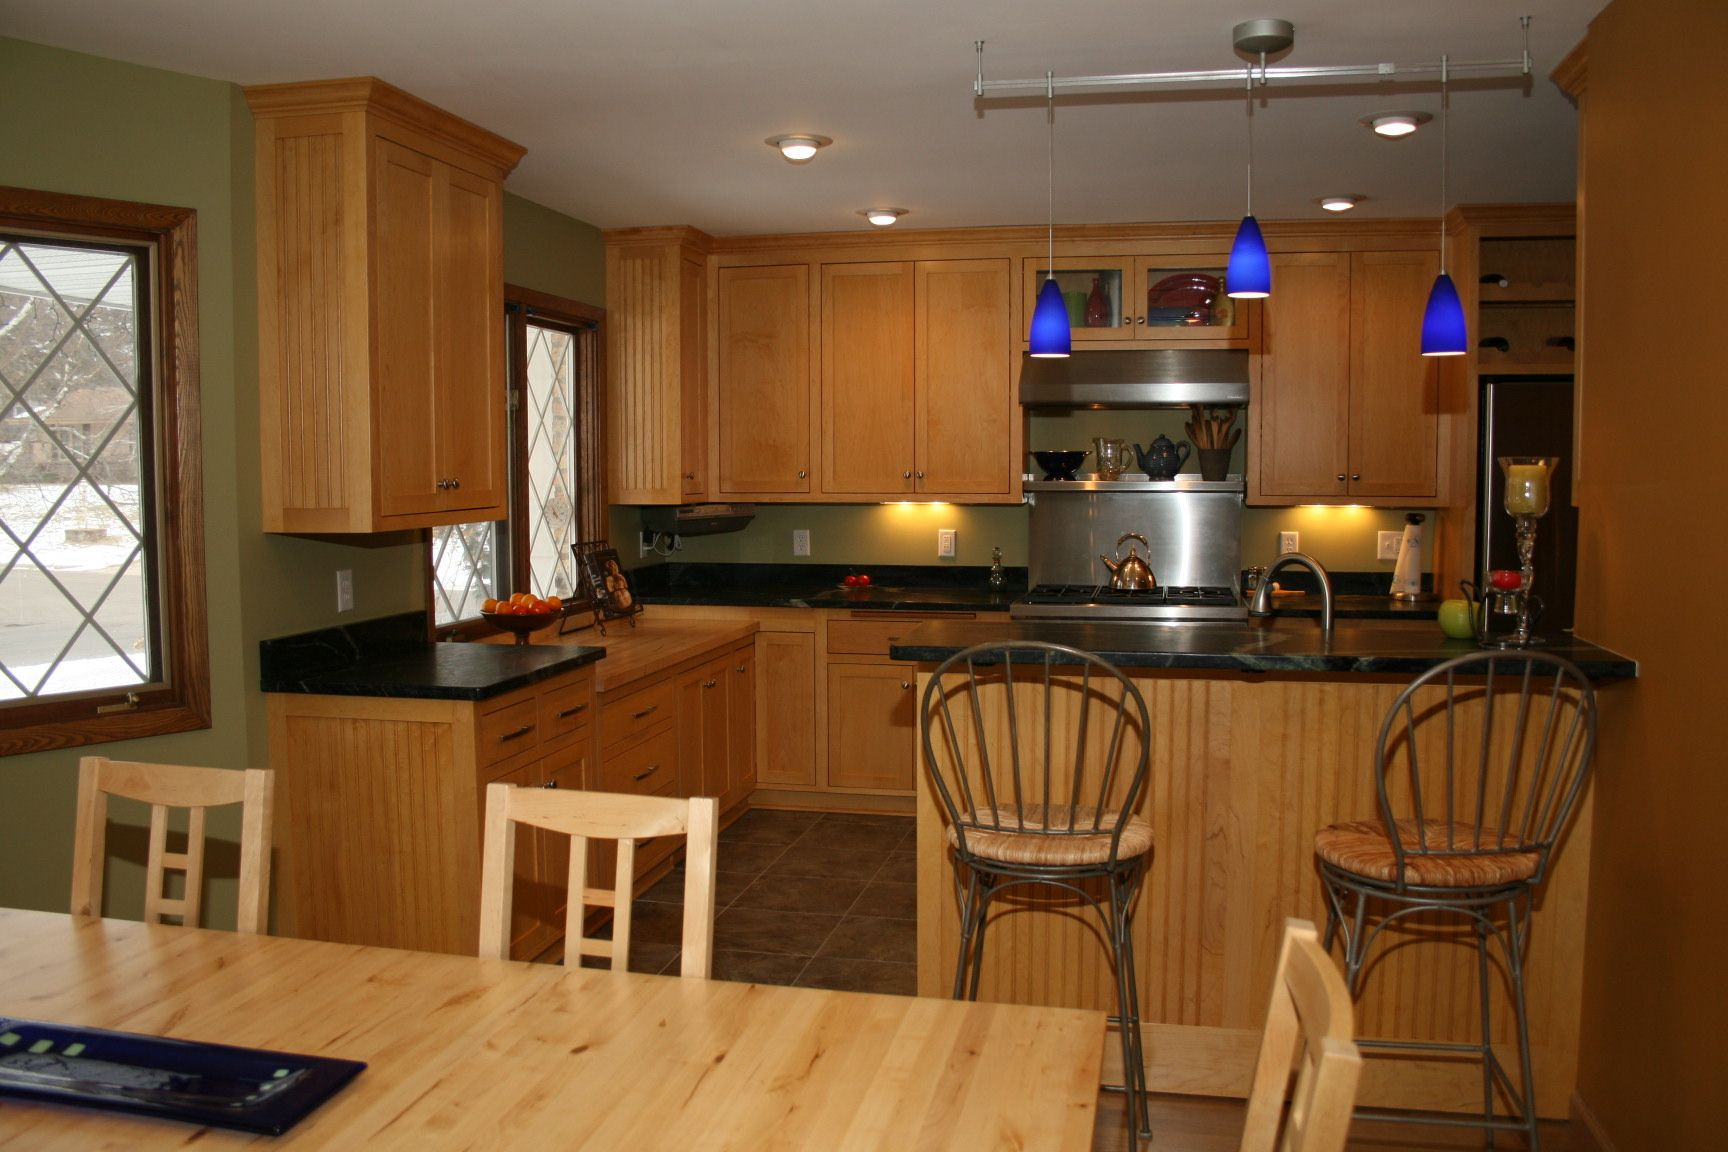 soapstone kitchen countertops Maple cabinets and soapstone countertops